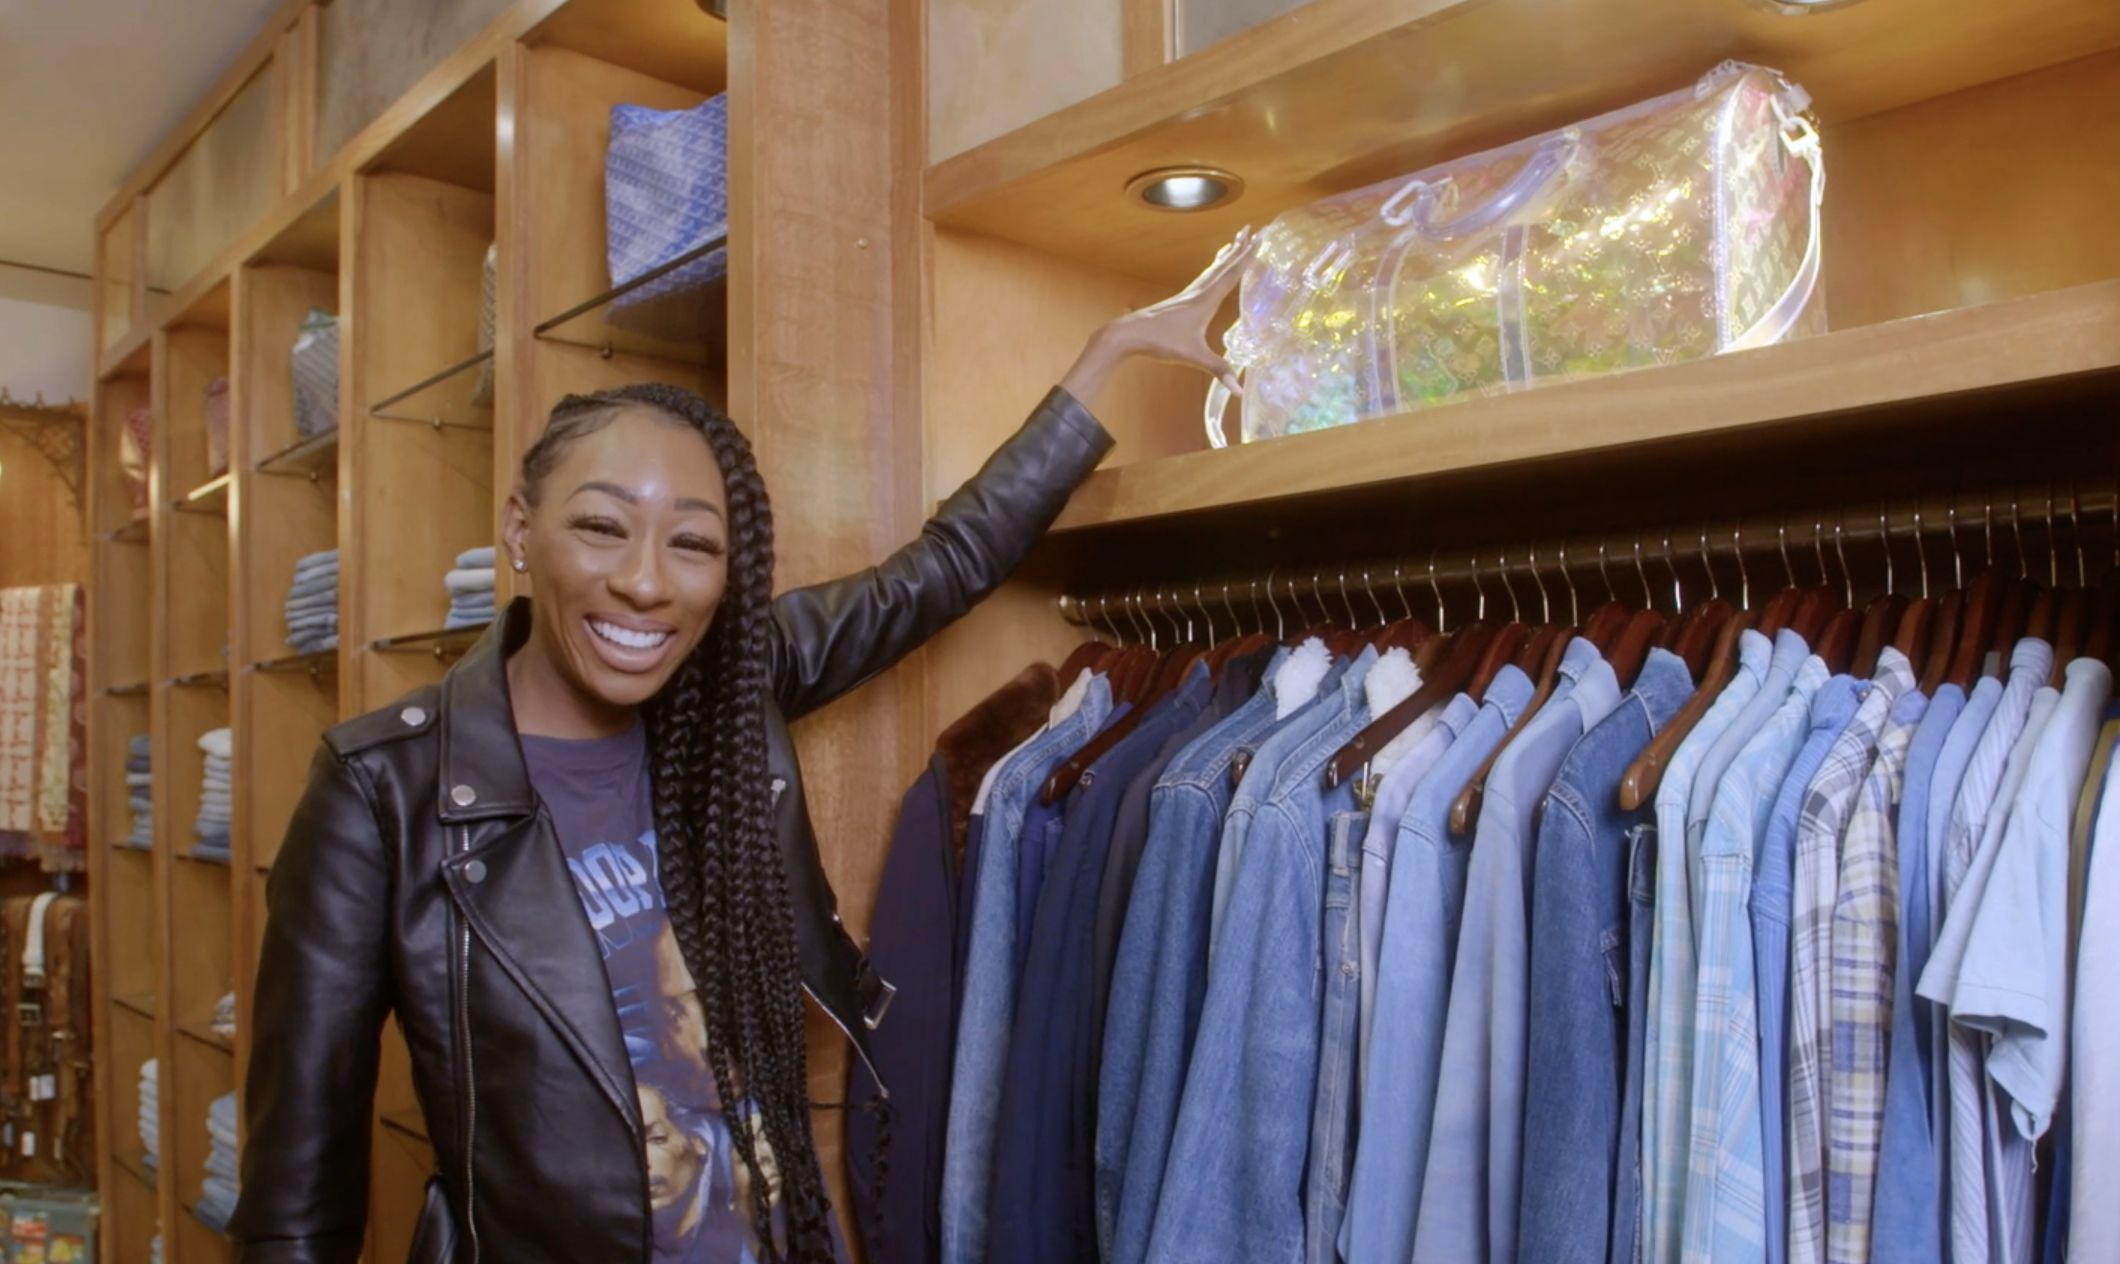 Comedian LaLa lives out her high school fantasy and splurges on vintage Chanel and Louis Vuitton